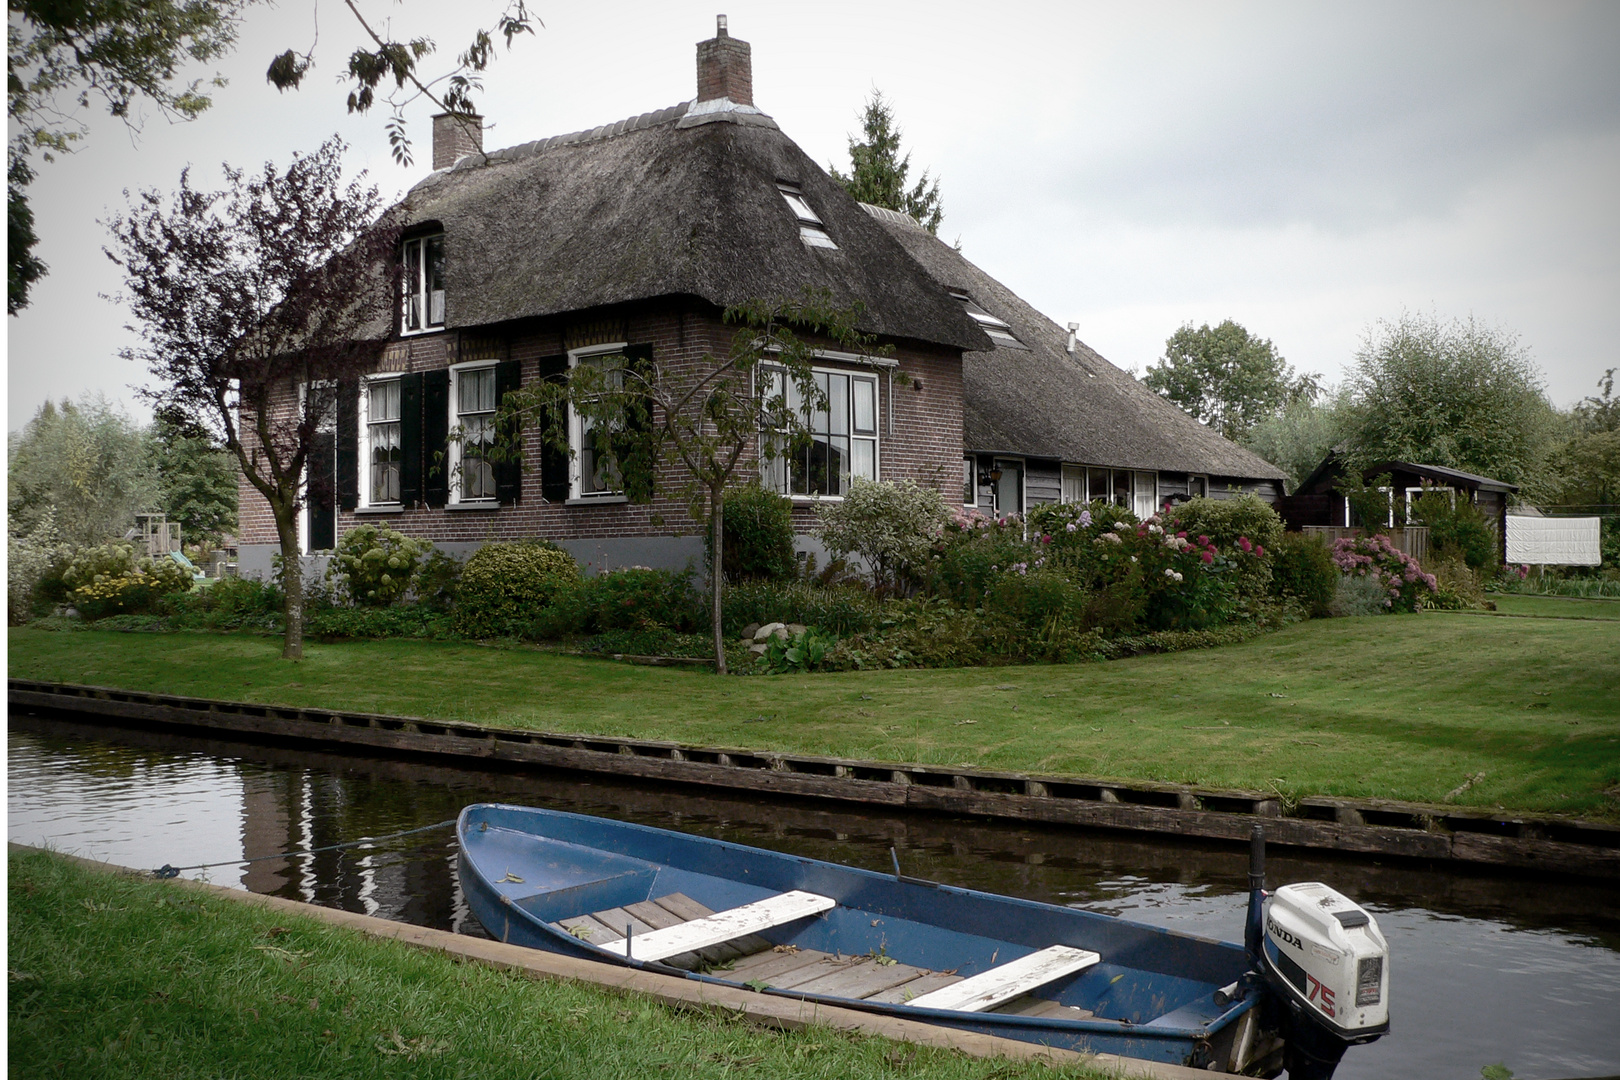 House And Boat !